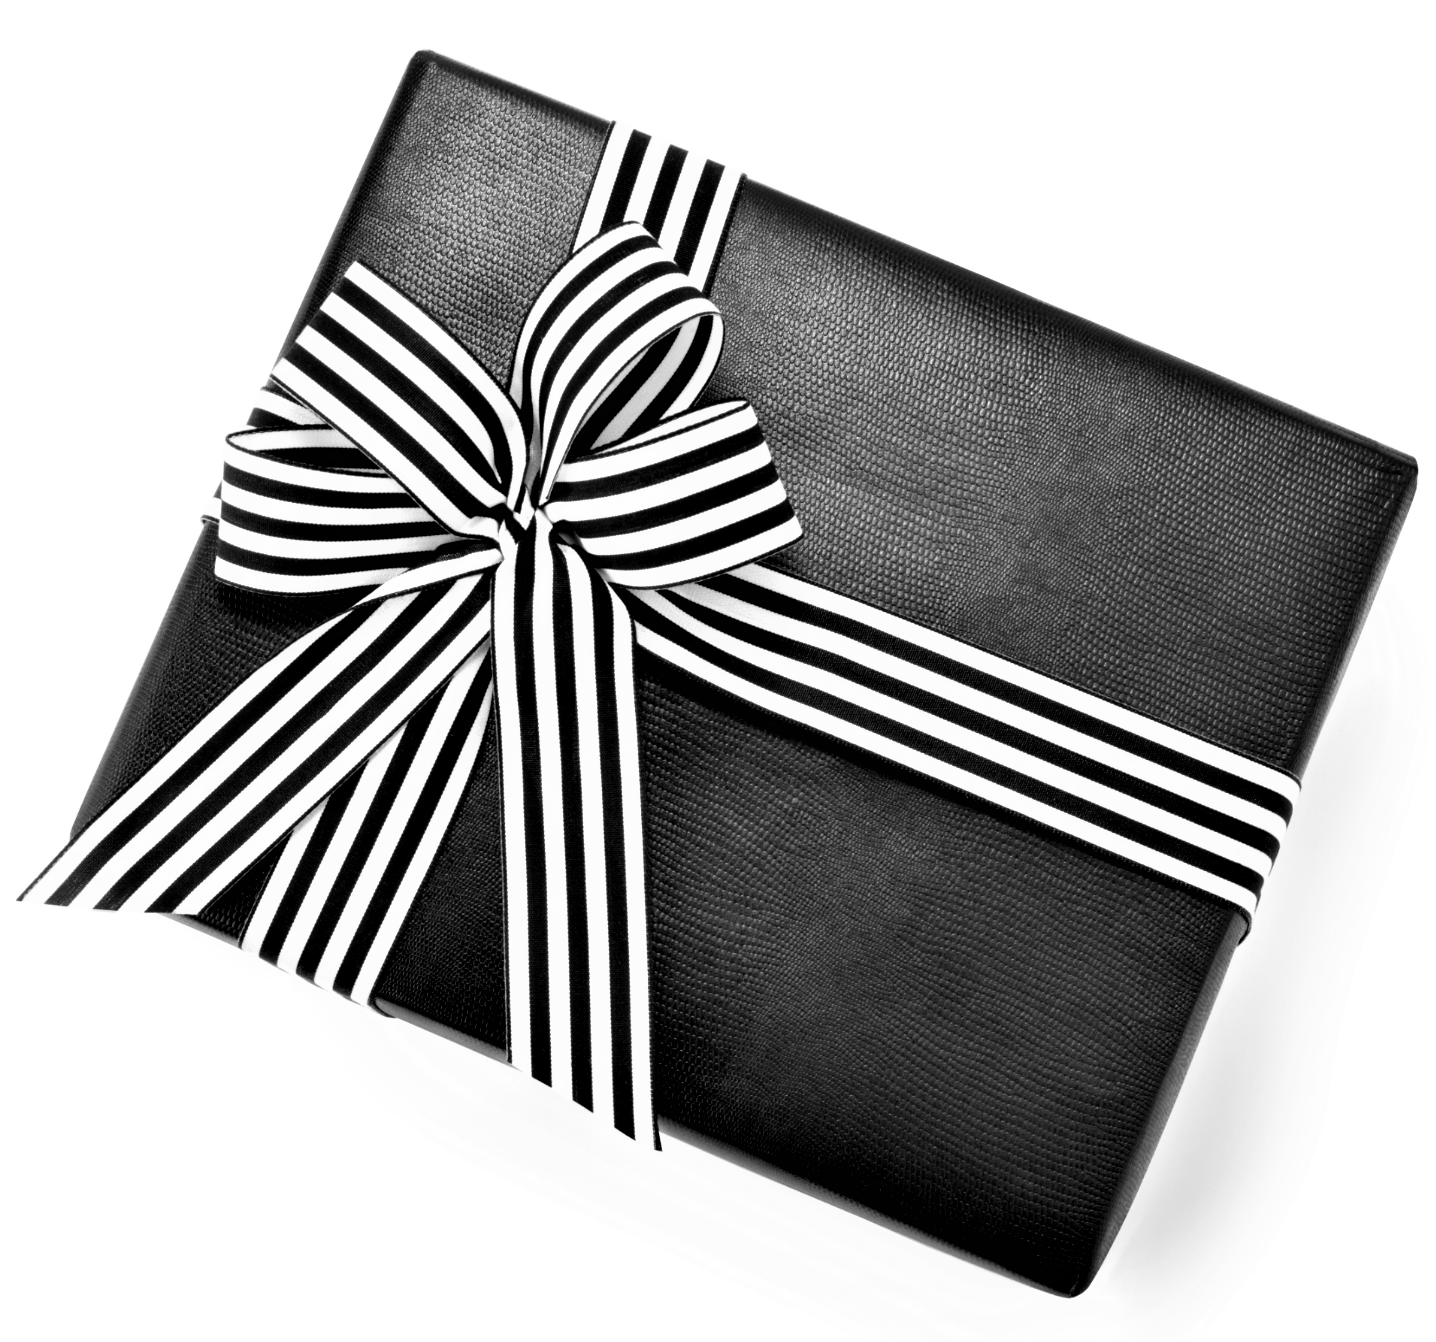 Urban Vintage LA Custom Gift Wrap Featuring Black Faux Leather Paper and Black and White Ribbon